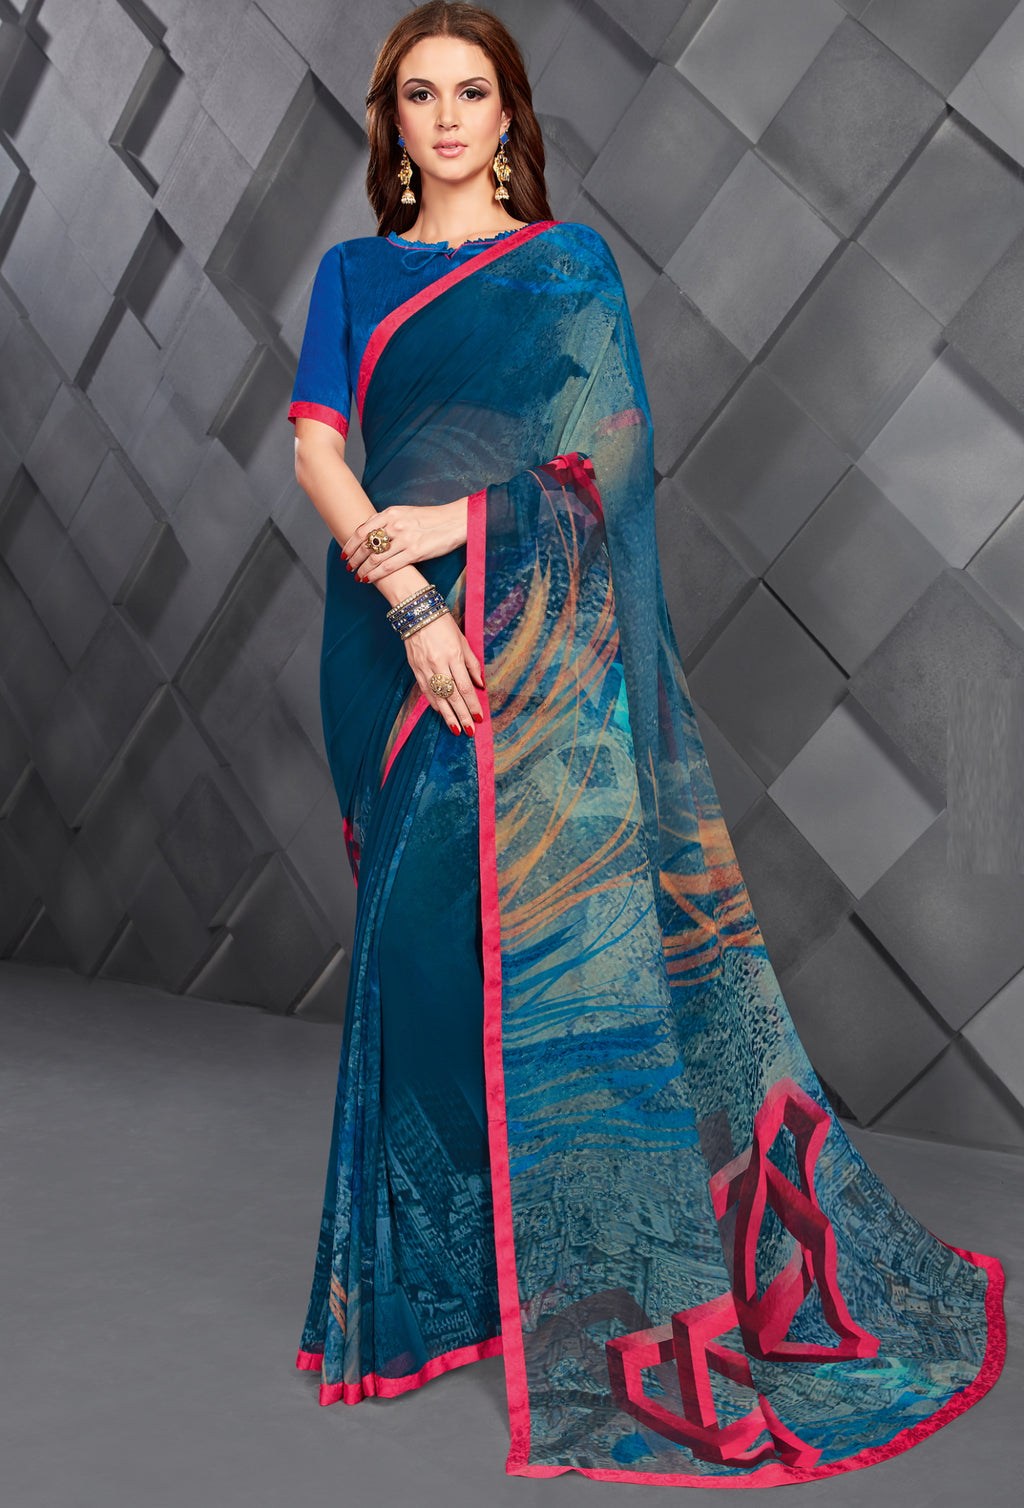 Blue Color Georgette Splendid Kitty Party Sarees NYF-6391